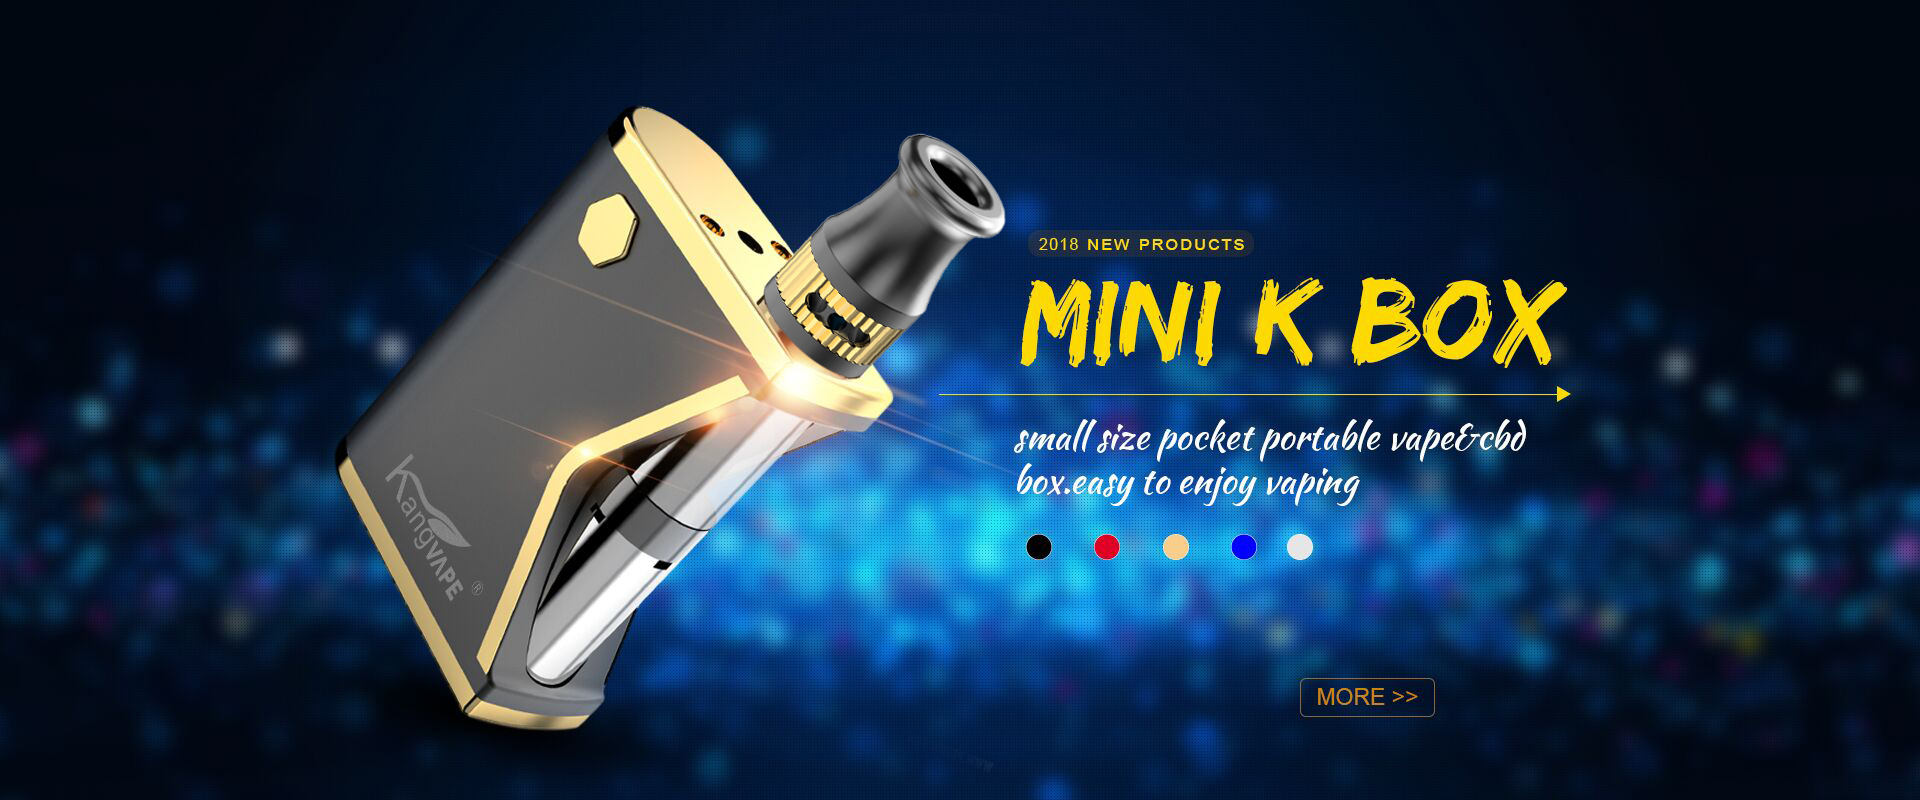 kangvape New Products 2018 Disposable CBD/THC mini k box Oil Vape Pen With Wholesale Price vape kit